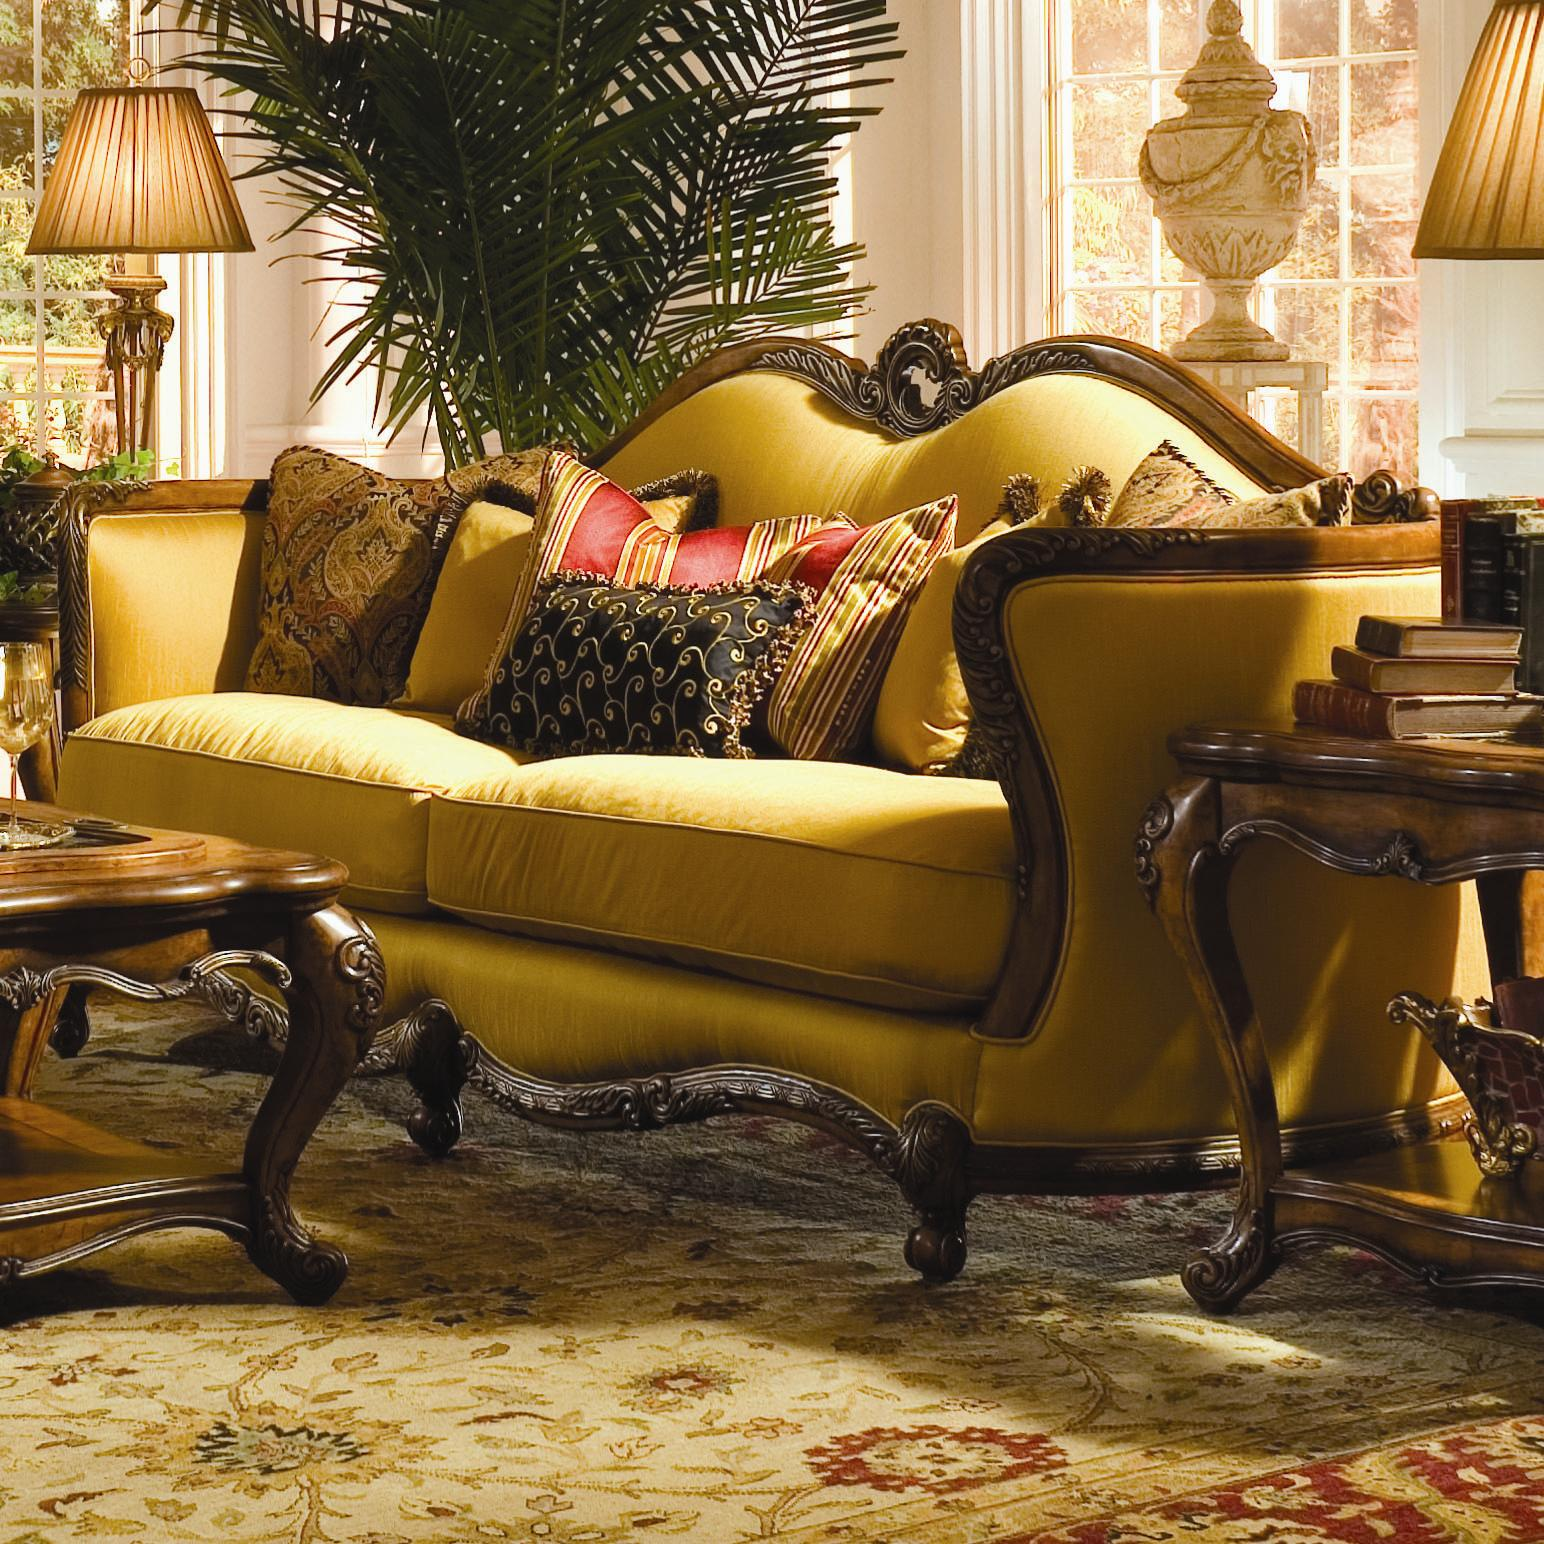 Michael Amini Palais Royale Wood Trim Sofa with Hand-Carved ...